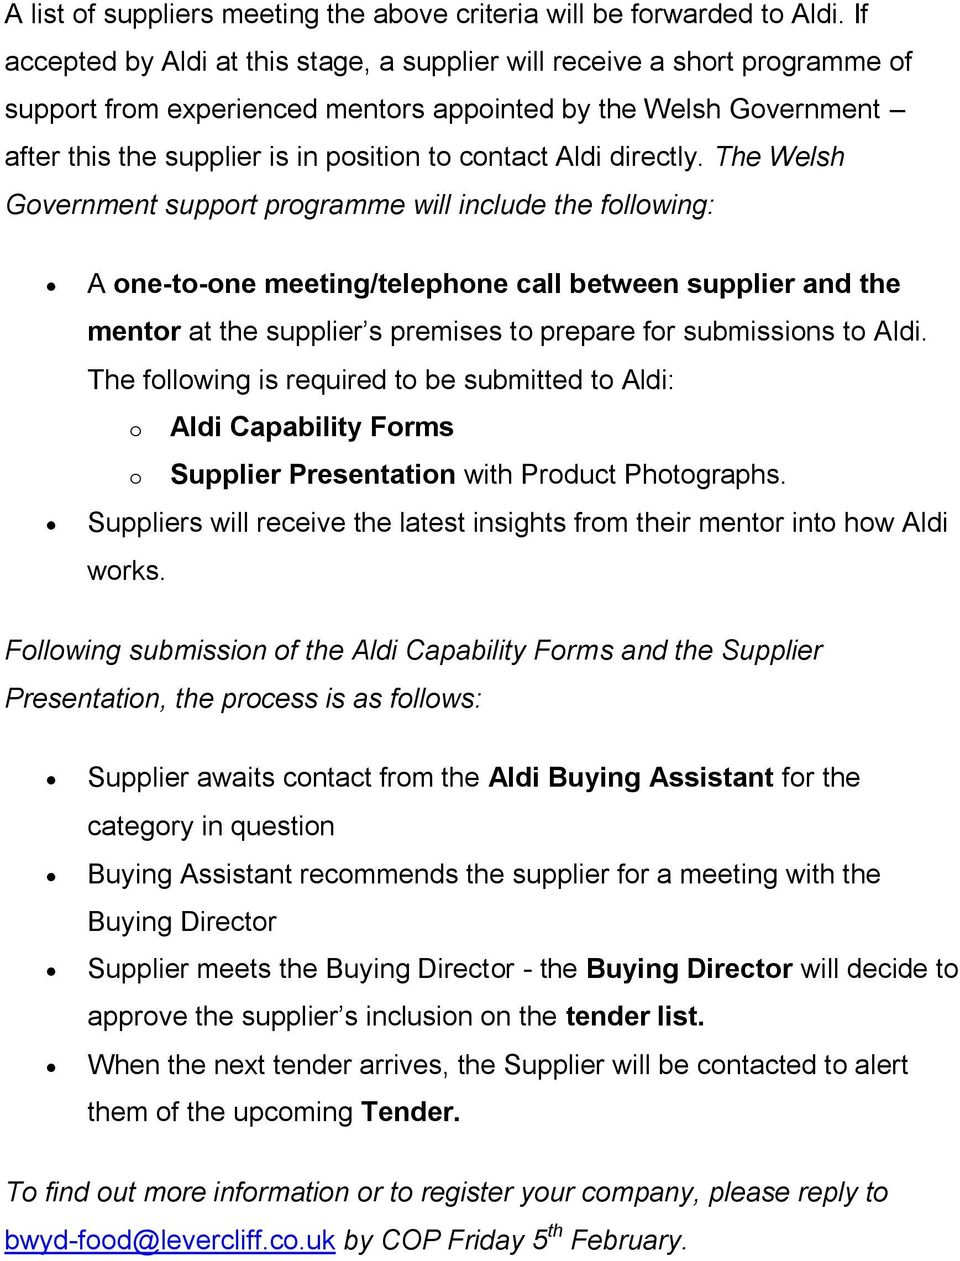 Aldi directly. The Welsh Government support programme will include the following: mentor at the supplier s premises to prepare for submissions to Aldi.